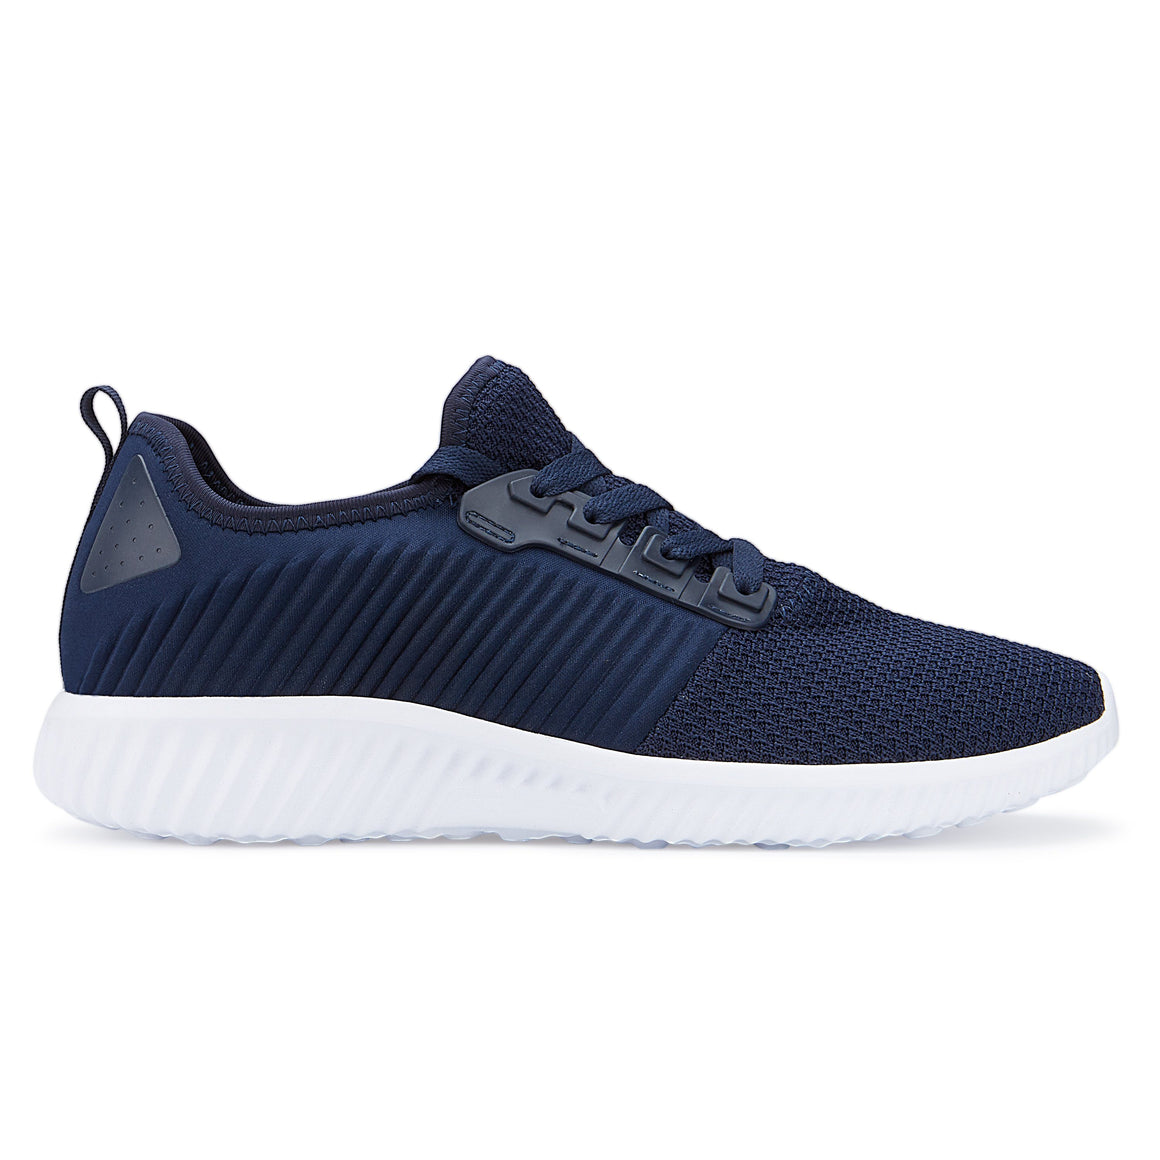 Xray Men's The Galeras Athletic Sneaker NAVY